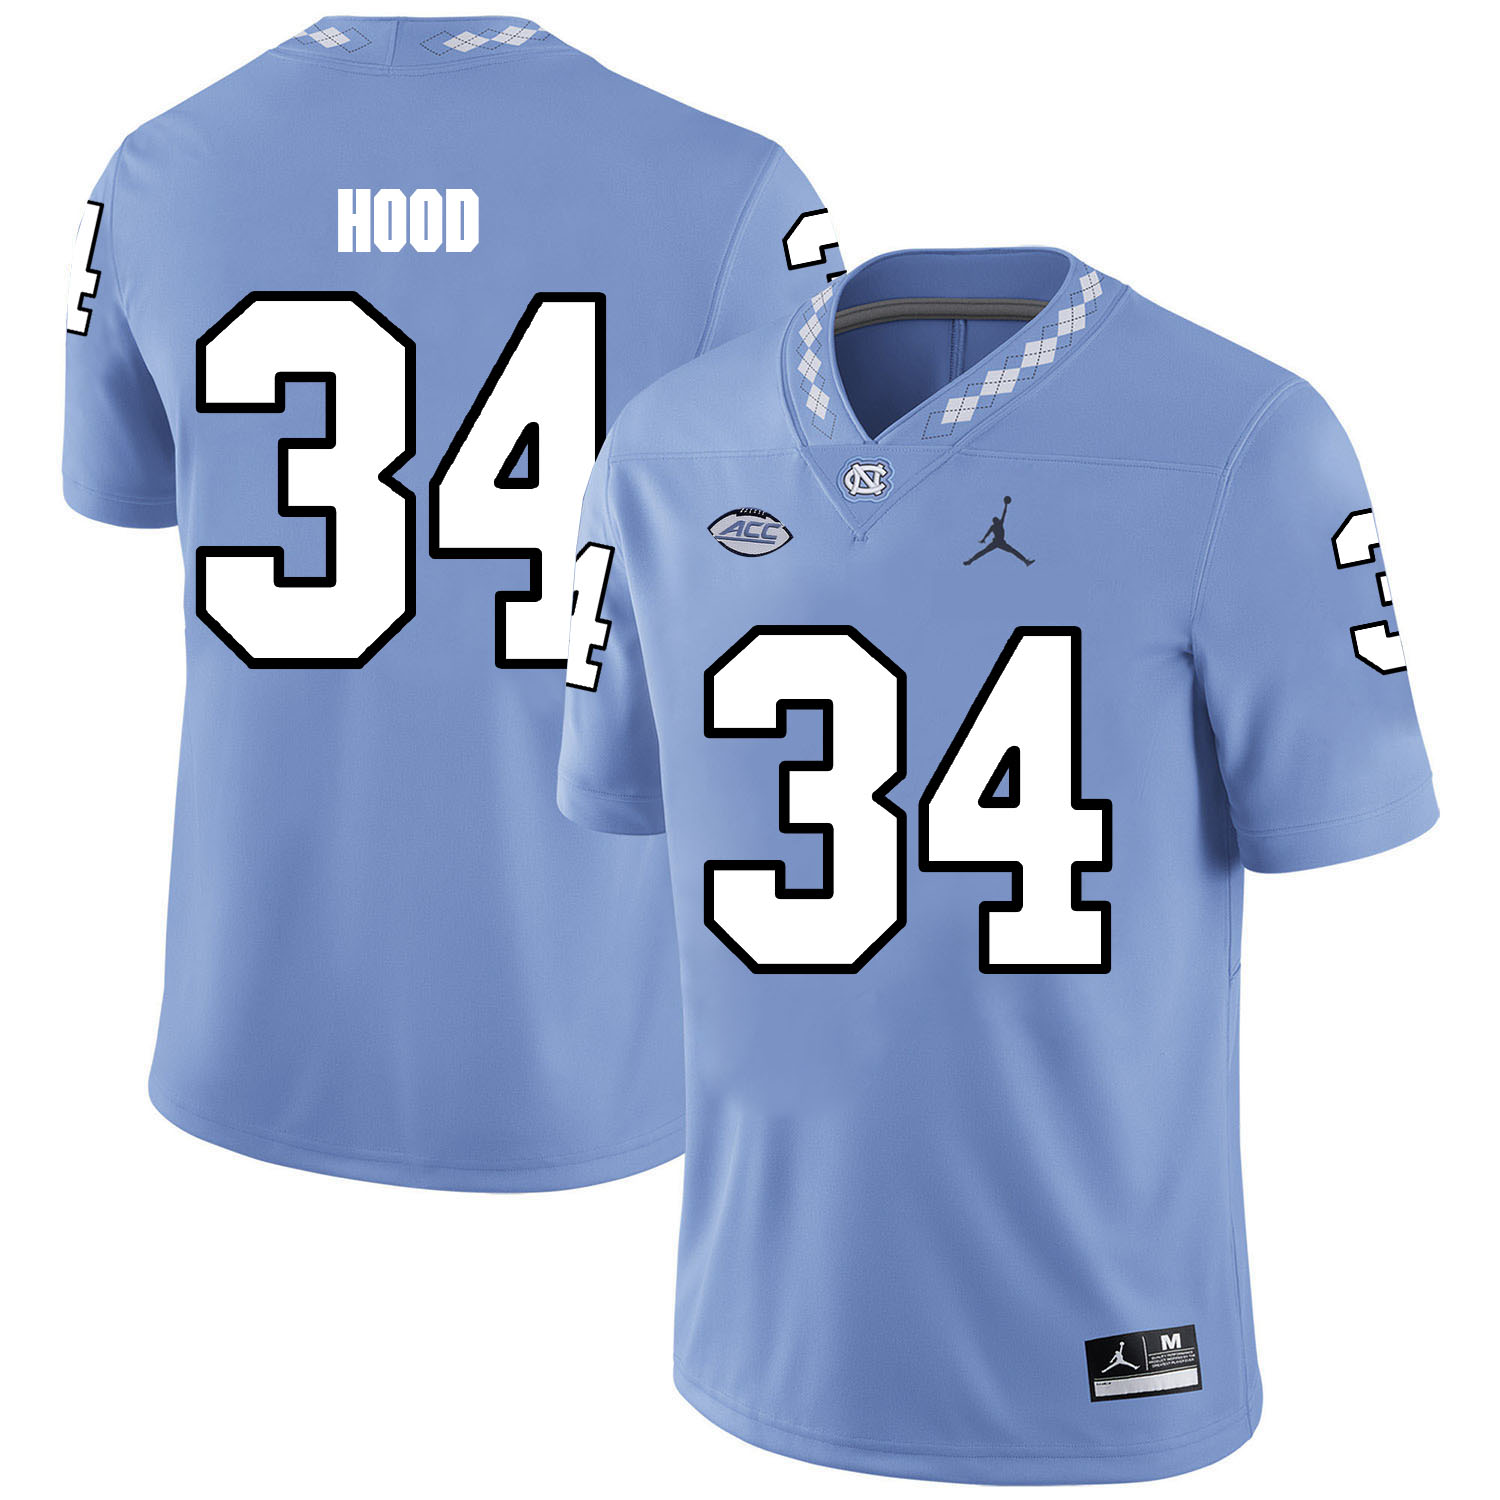 North Carolina Tar Heels 34 Elijah Hood Blue College Football Jersey